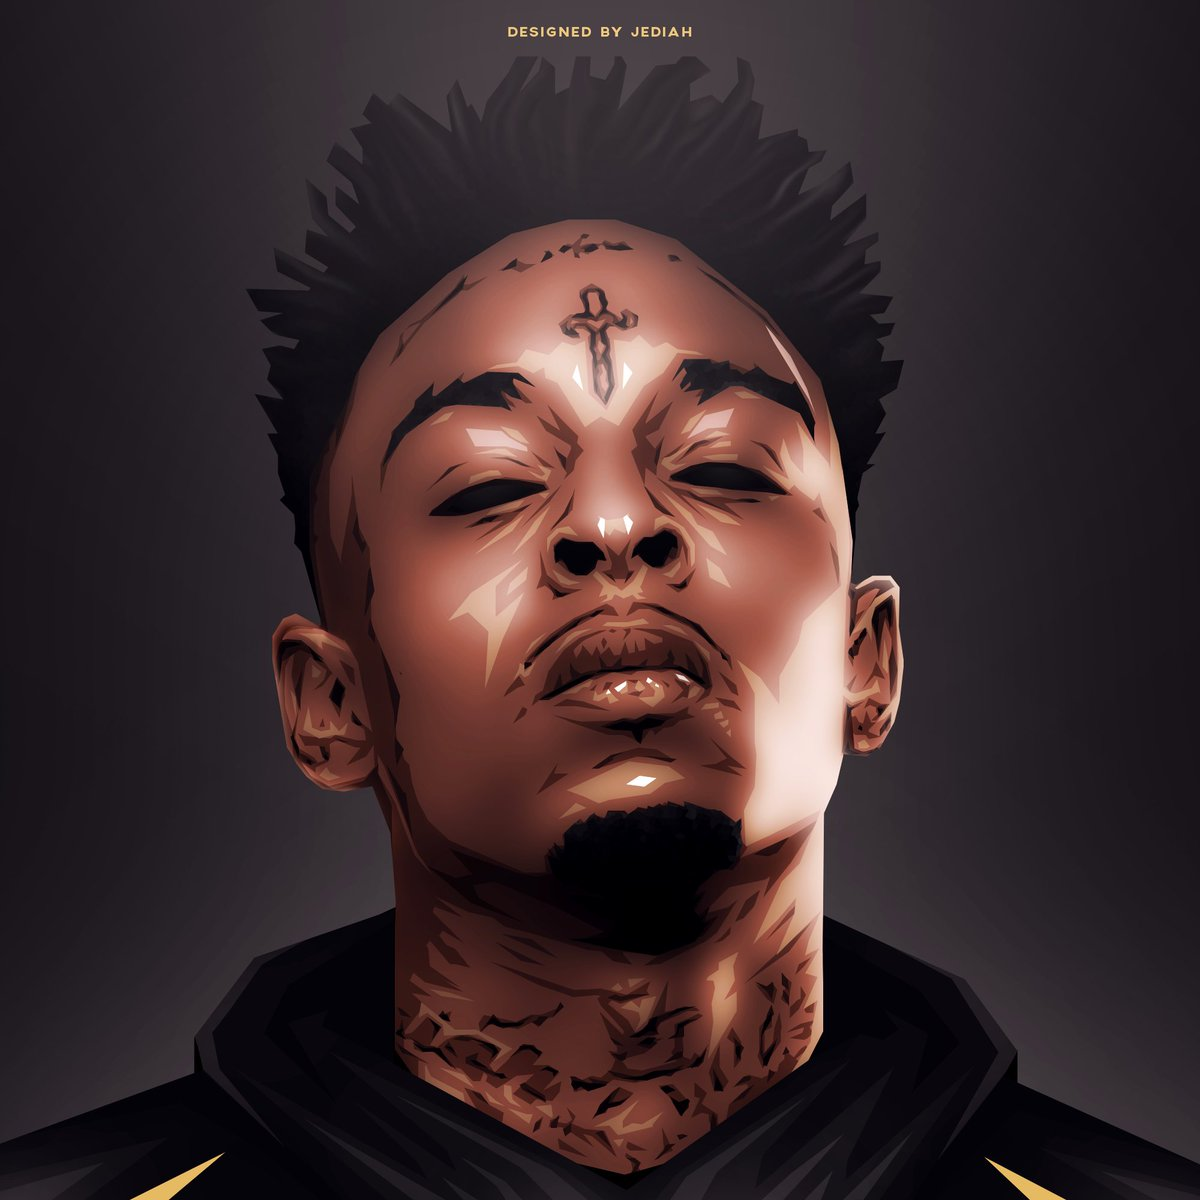 king jediah 愛 on twitter 21 savage artwork designed by me rts